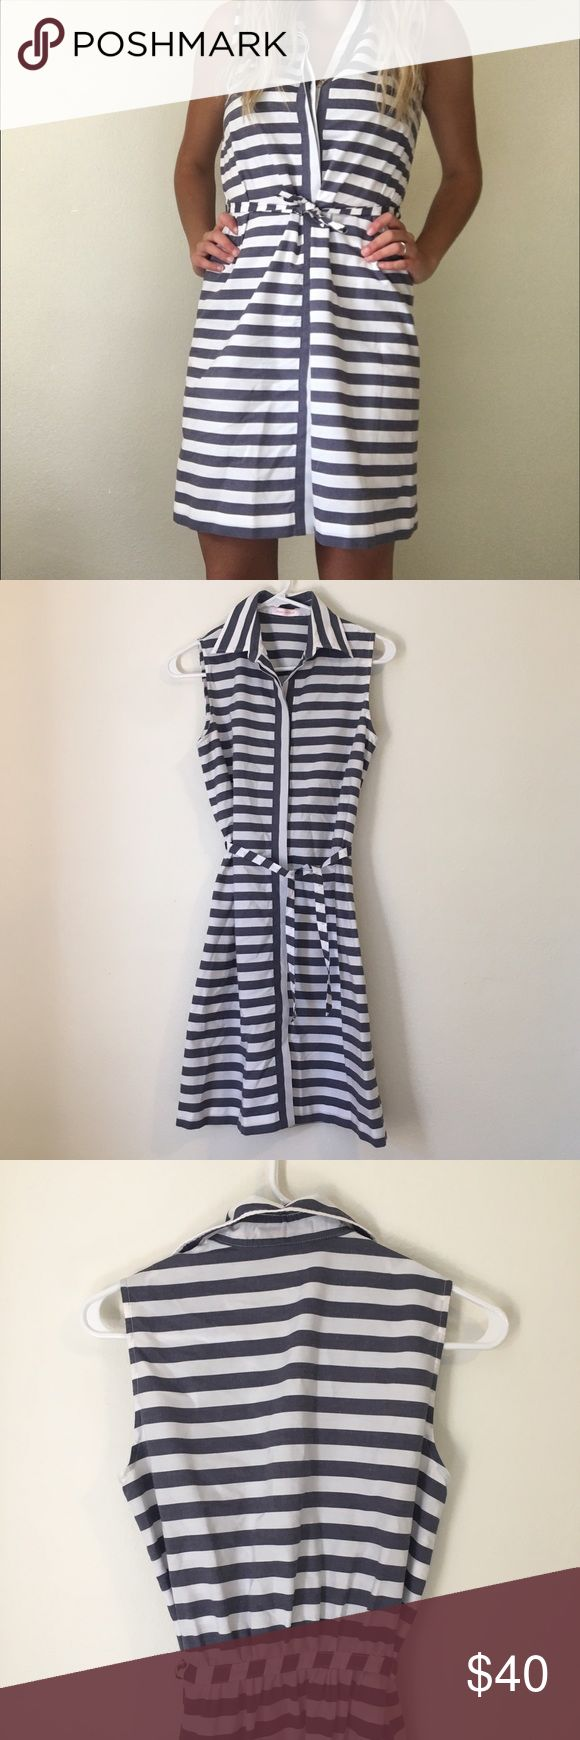 Navy blue and white stripe button up dress Beautifully made navy blue and white striped button up tank dress. Super soft and comfortable. Lightly worn, like new. Tiable belt around the waist that can also be clasped. This belt is not be remove, but it is what makes the dress so flattering! Size Large on the tag, however fits more like a S/M. Bust: 17 in Length: 35 in Jeune Weekend Dresses Midi